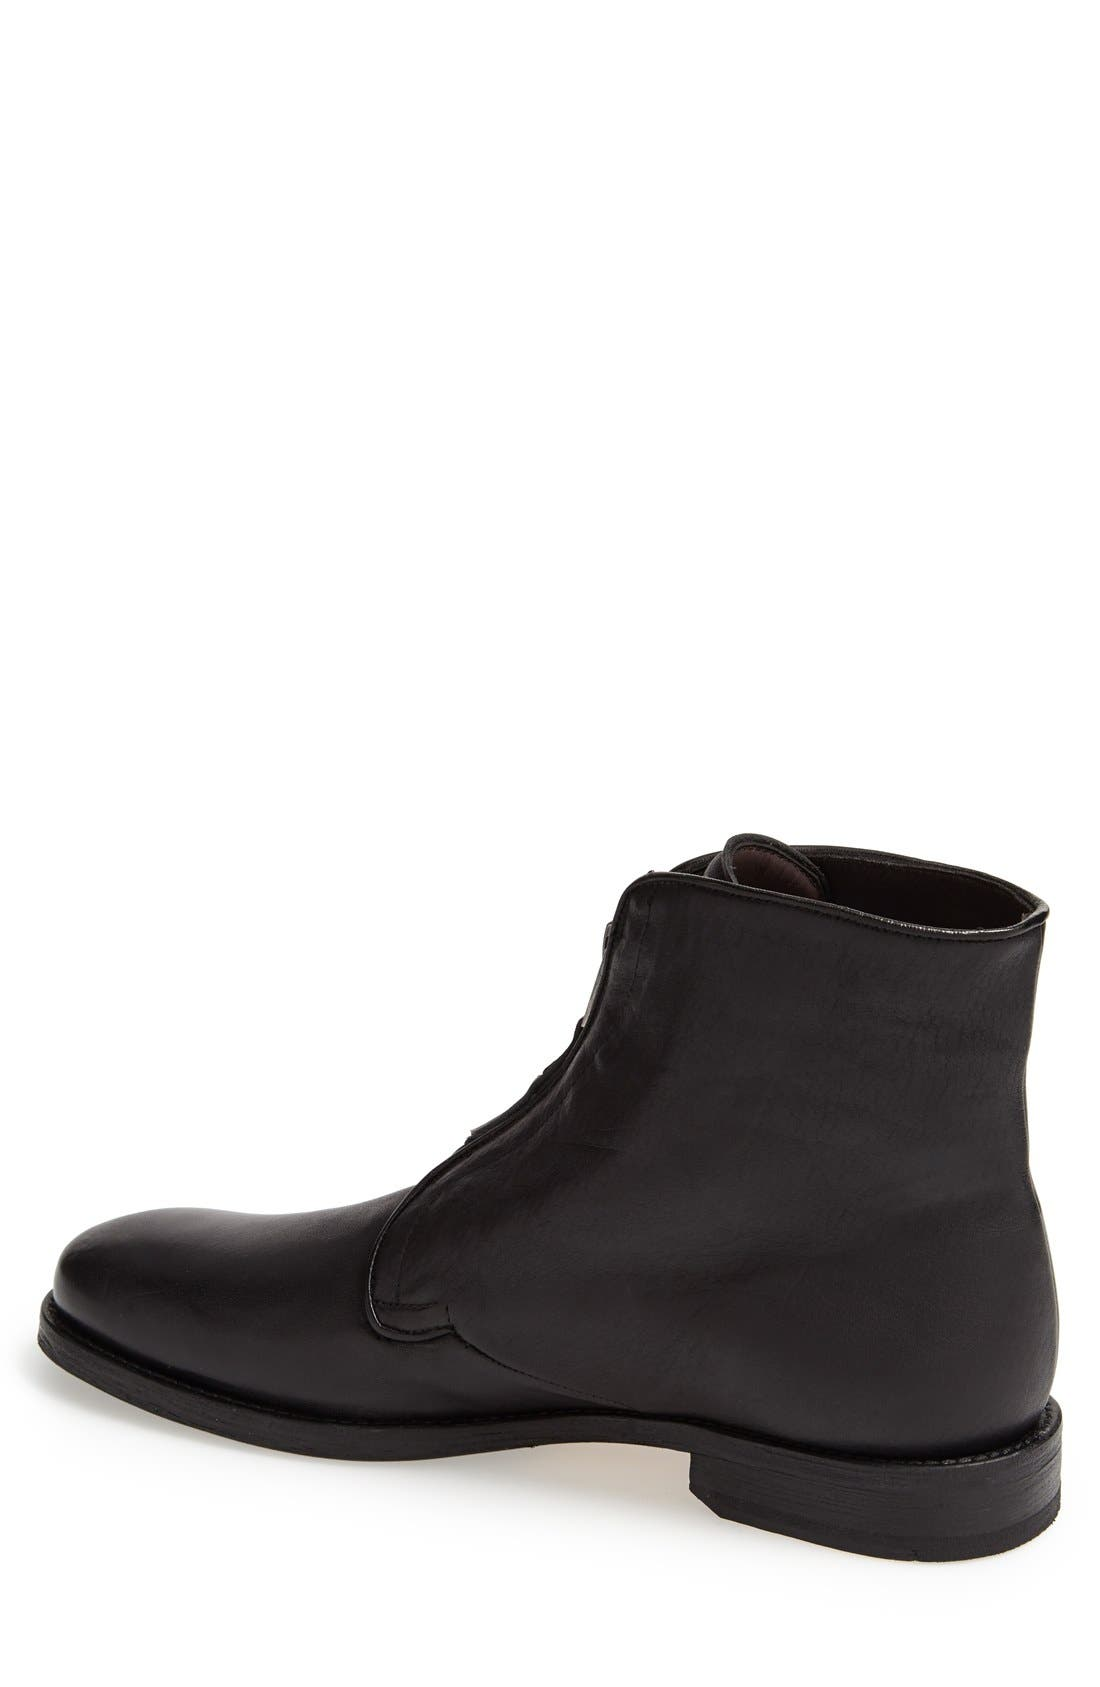 Alternate Image 2  - Maison Forte 'Guerra' Zip Boot